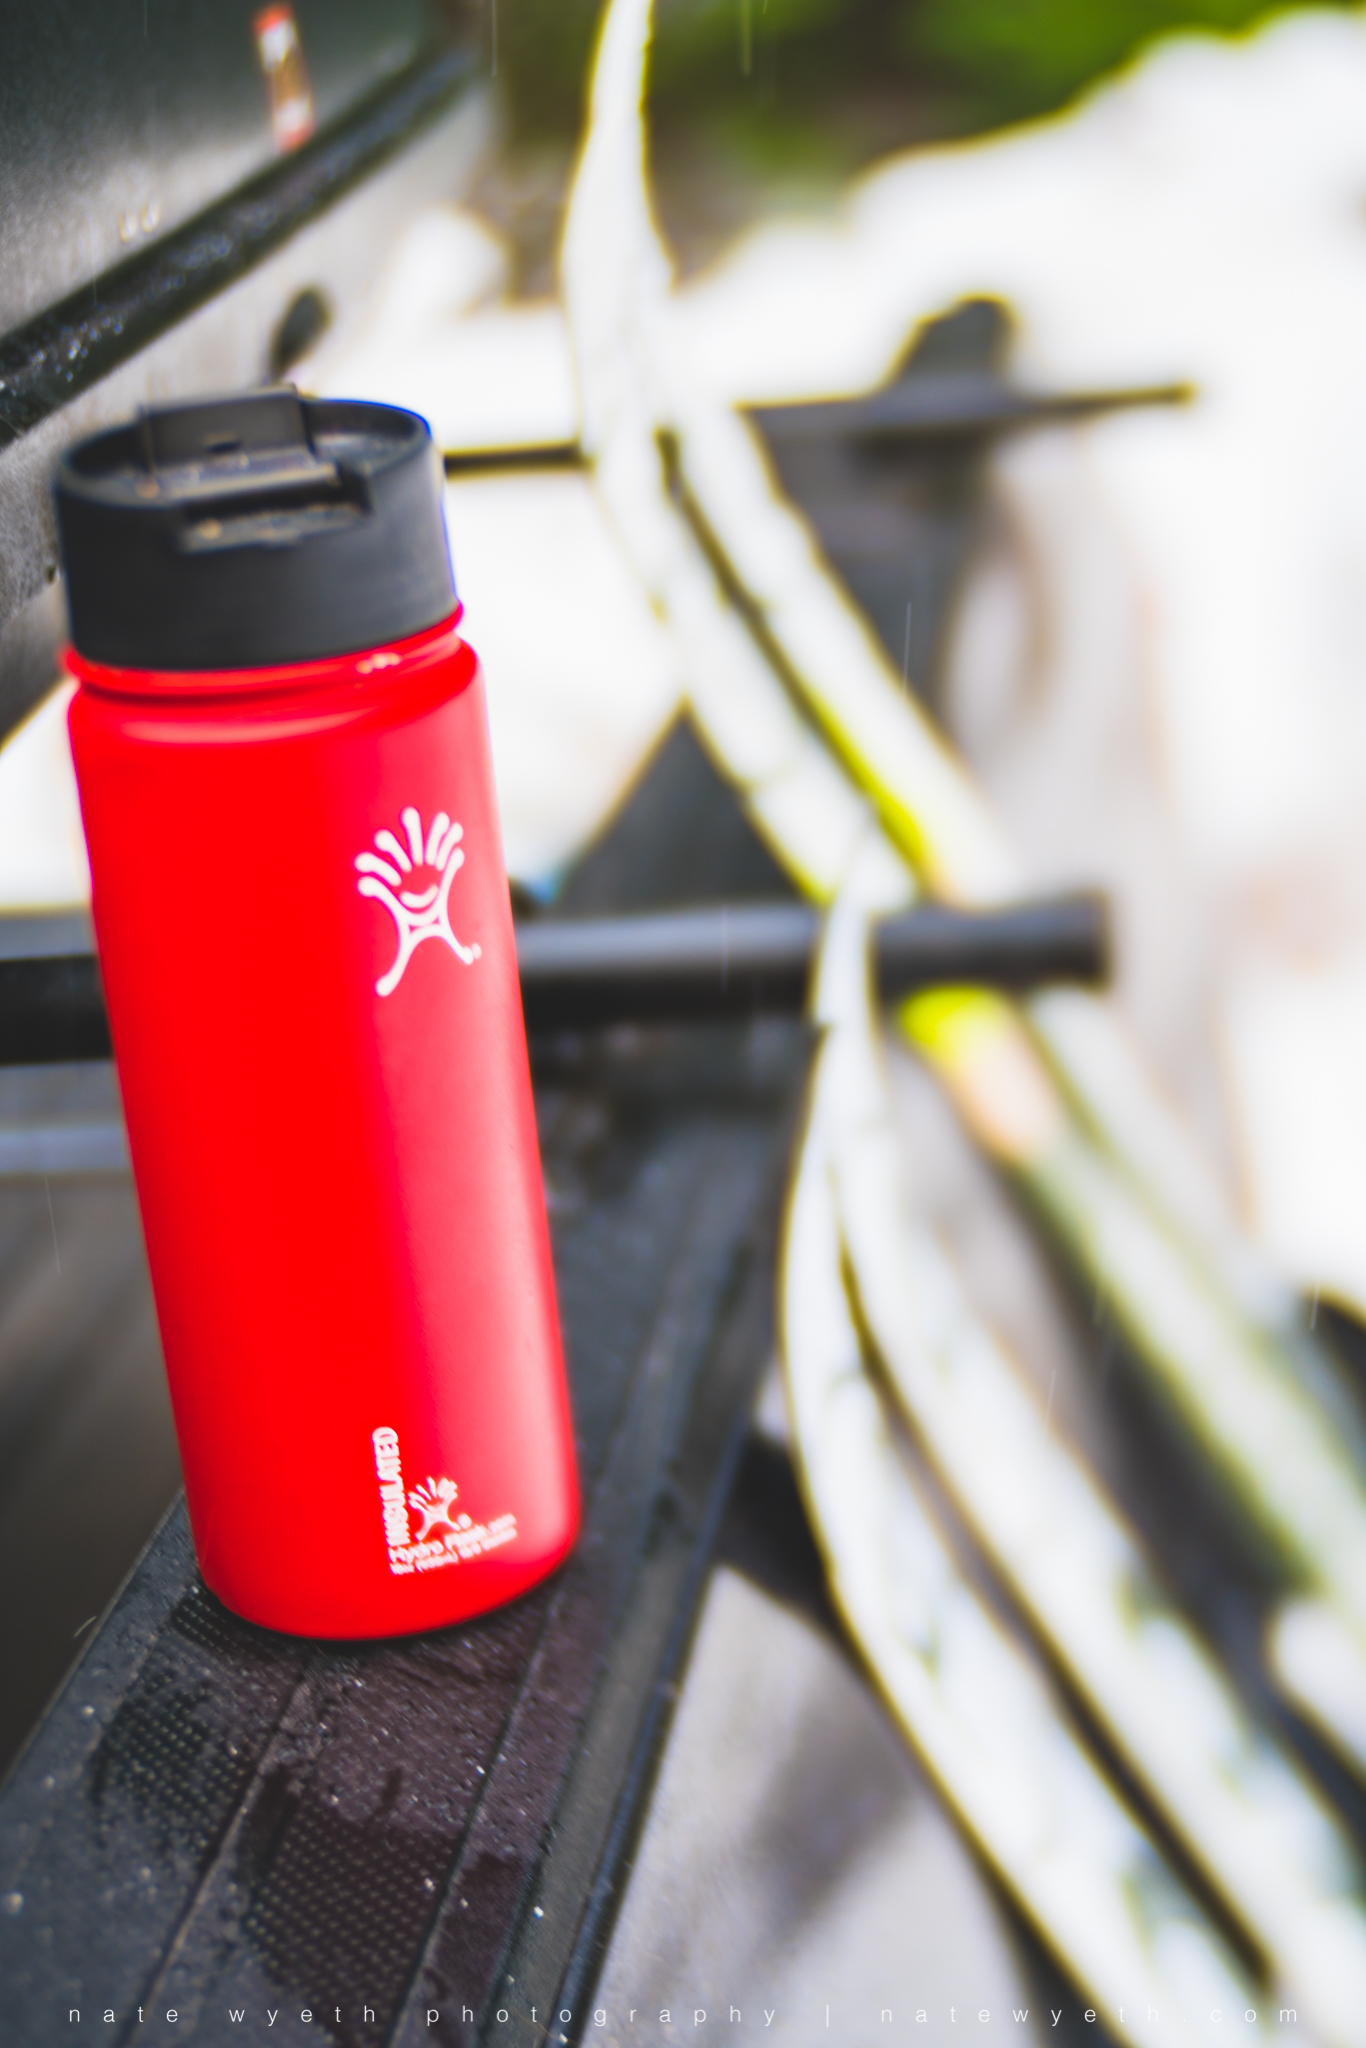 HyrdroFlask reusable and insulated water bottle.